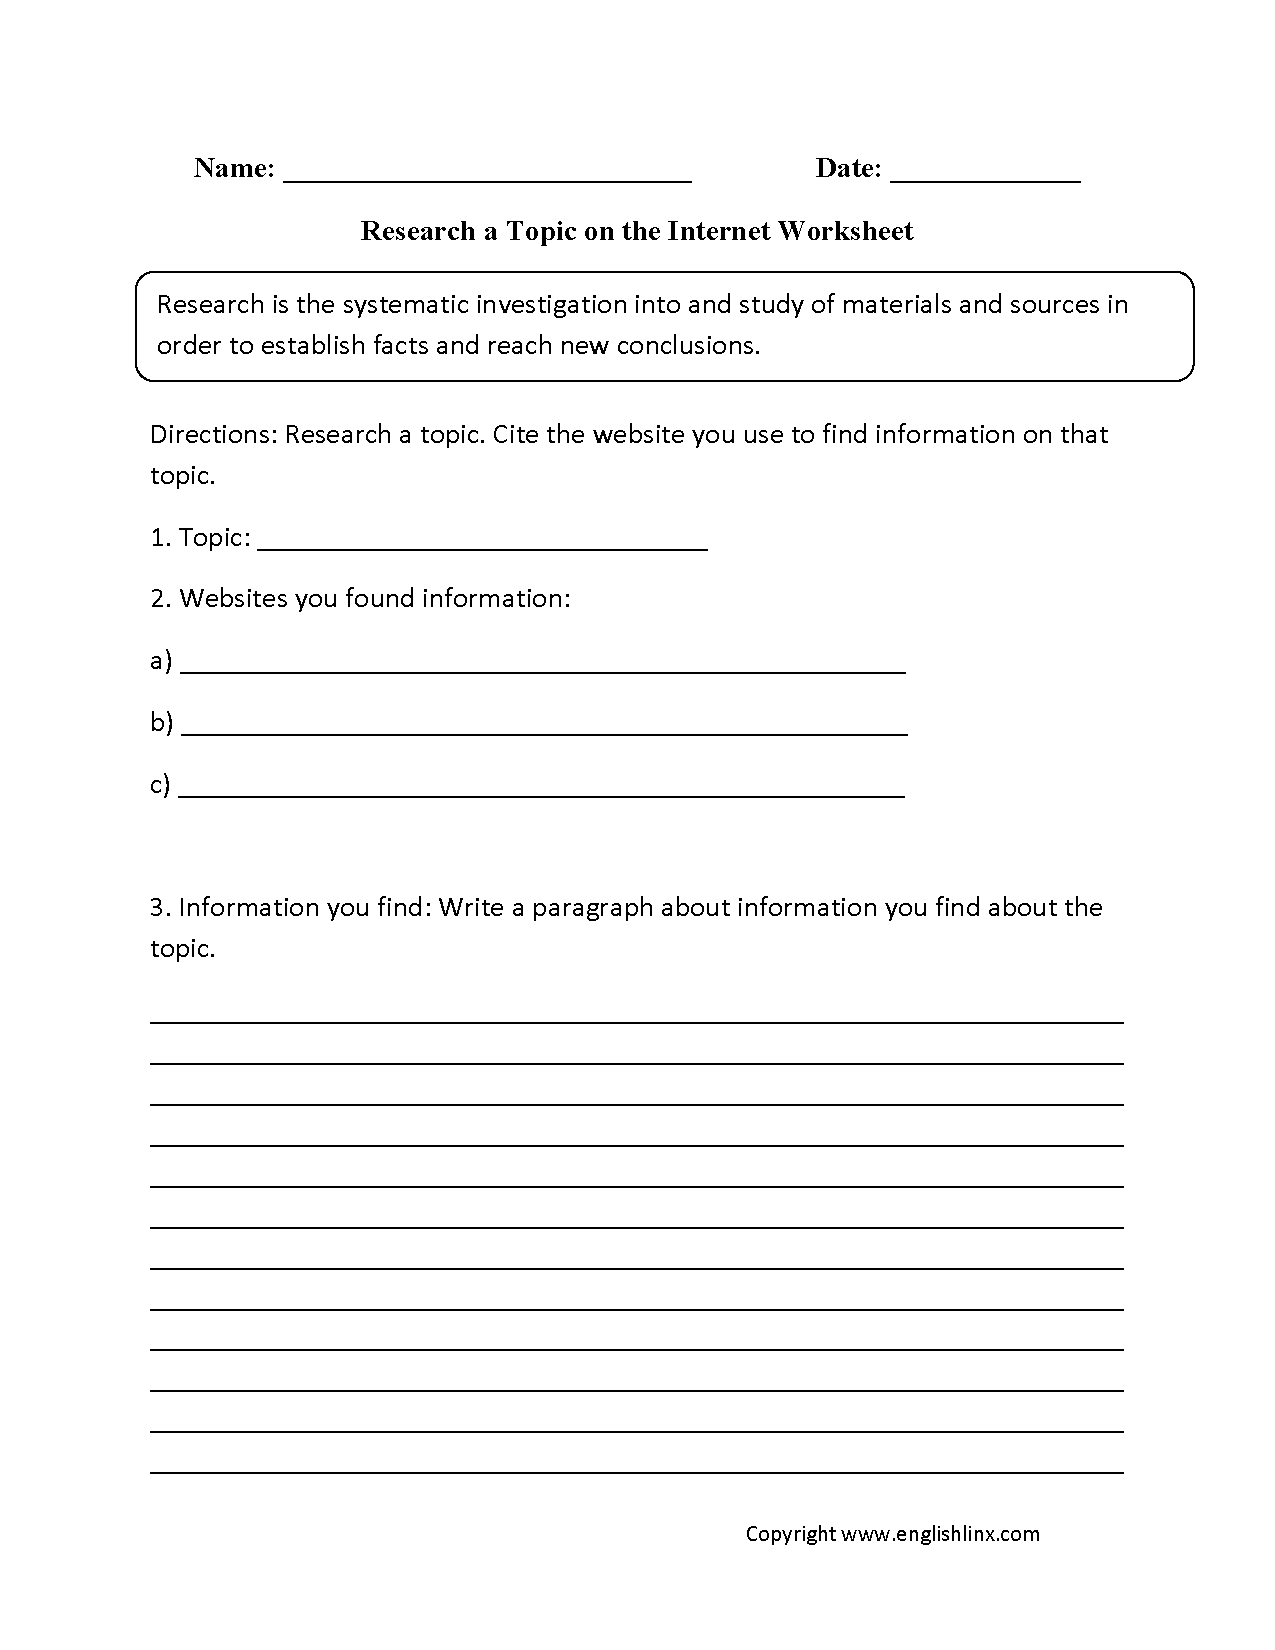 Aldiablosus  Remarkable Englishlinxcom  Research Worksheets With Fascinating On The Internet Worksheet With Beautiful Coordinate Plane Worksheets Th Grade Also Grammar Land Worksheets In Addition Dr Seuss Printable Worksheets And Easter Printable Worksheets As Well As Oxymoron Worksheets Additionally Surface Area Using Nets Worksheet From Englishlinxcom With Aldiablosus  Fascinating Englishlinxcom  Research Worksheets With Beautiful On The Internet Worksheet And Remarkable Coordinate Plane Worksheets Th Grade Also Grammar Land Worksheets In Addition Dr Seuss Printable Worksheets From Englishlinxcom